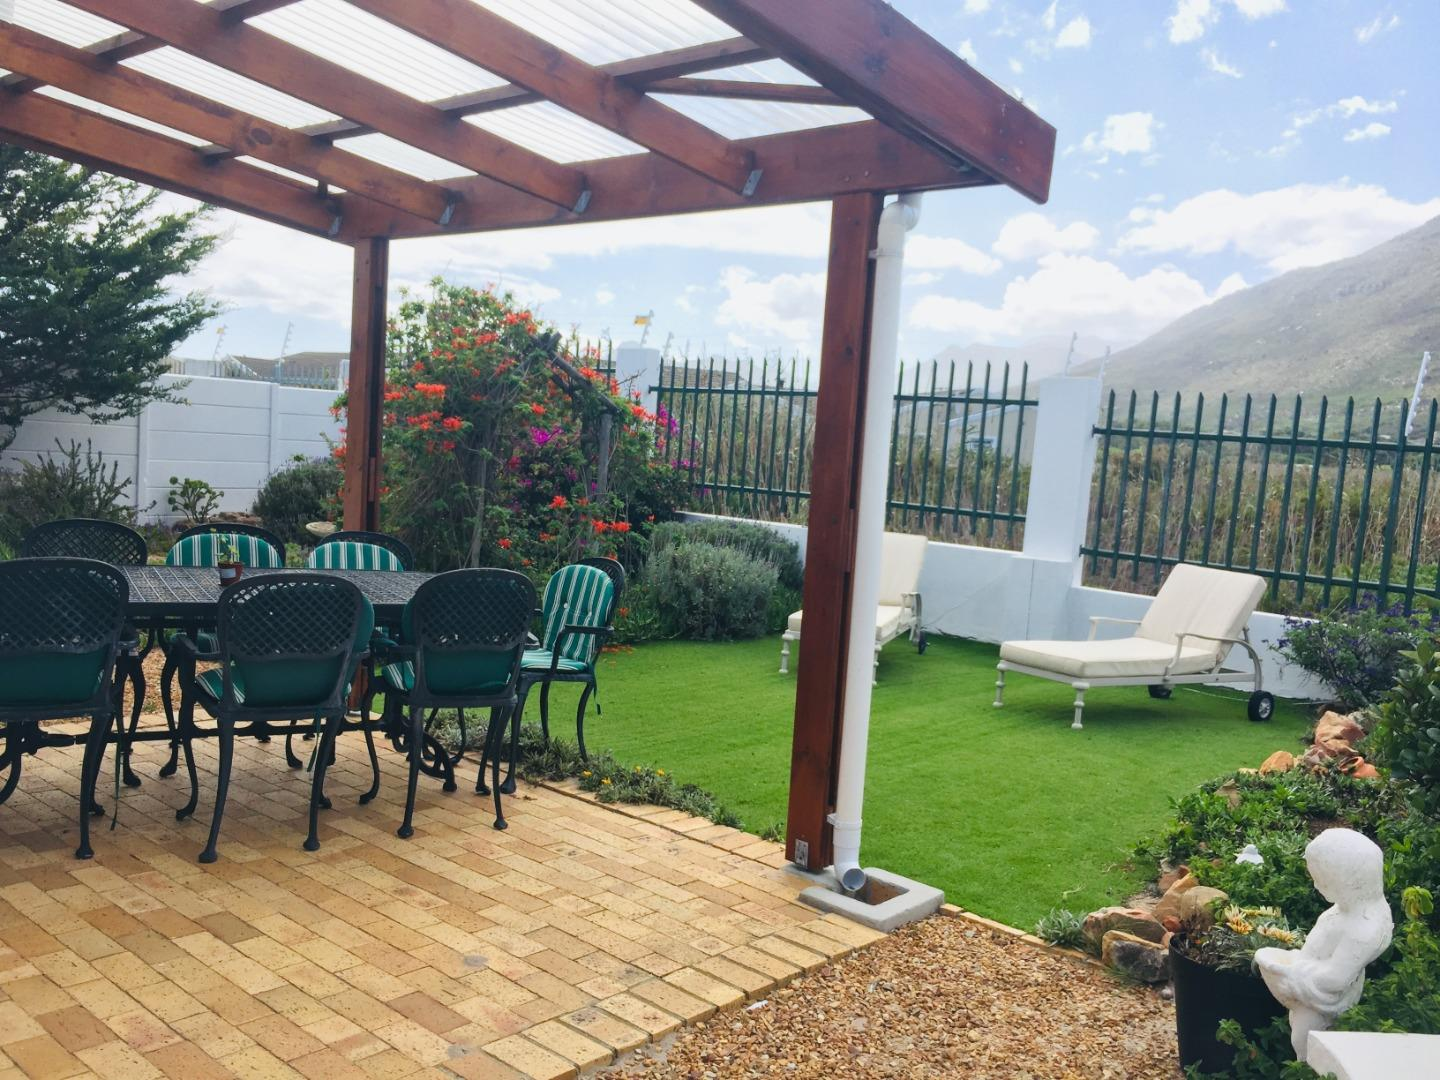 2 Bedroom  House for Sale in Fish Hoek - Western Cape